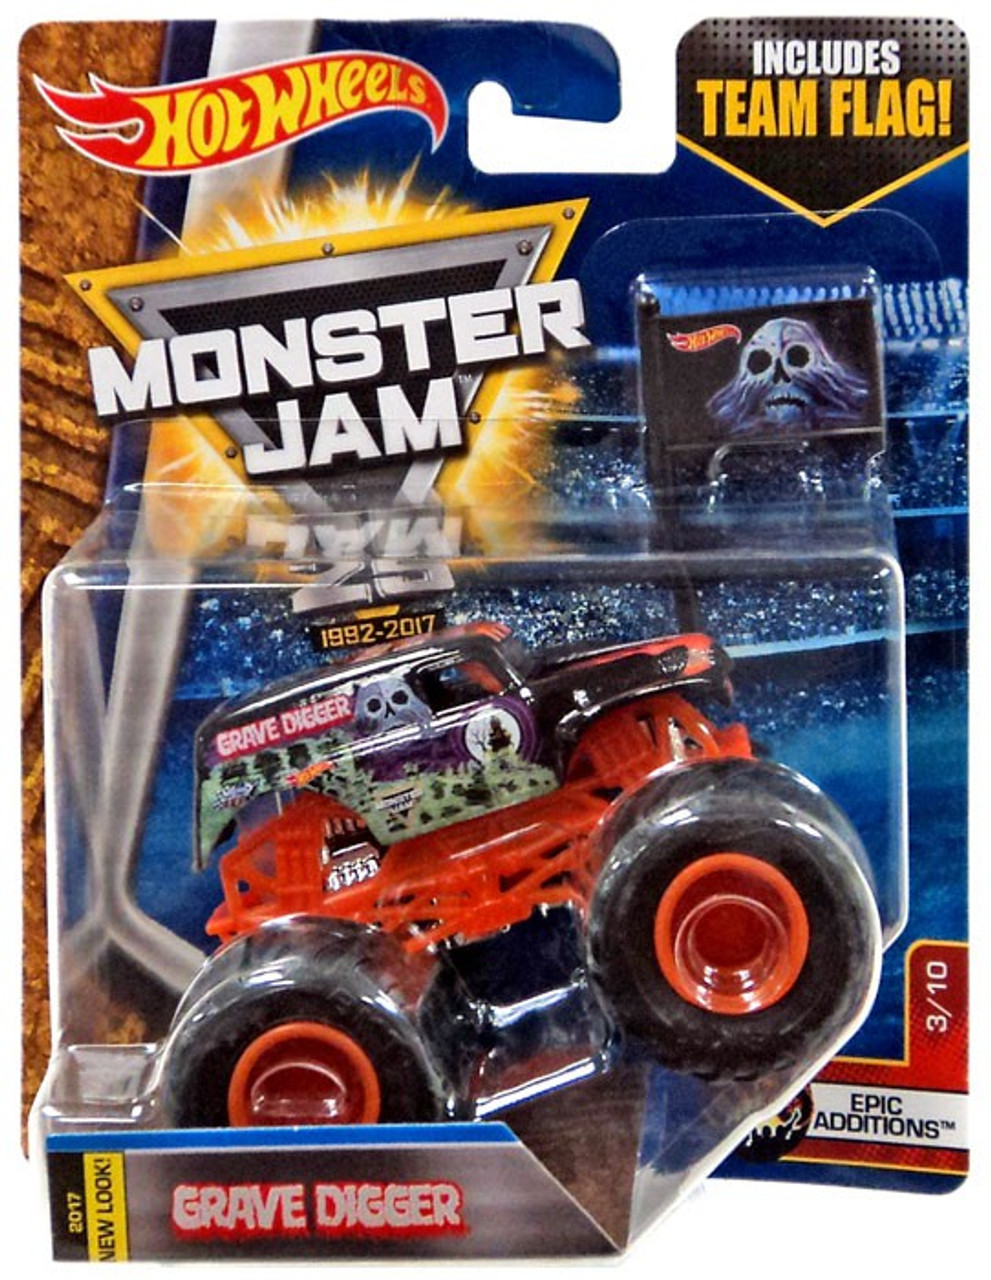 Hot Wheels Monster Jam Grave Digger 164 Die-Cast Car 310 Epic